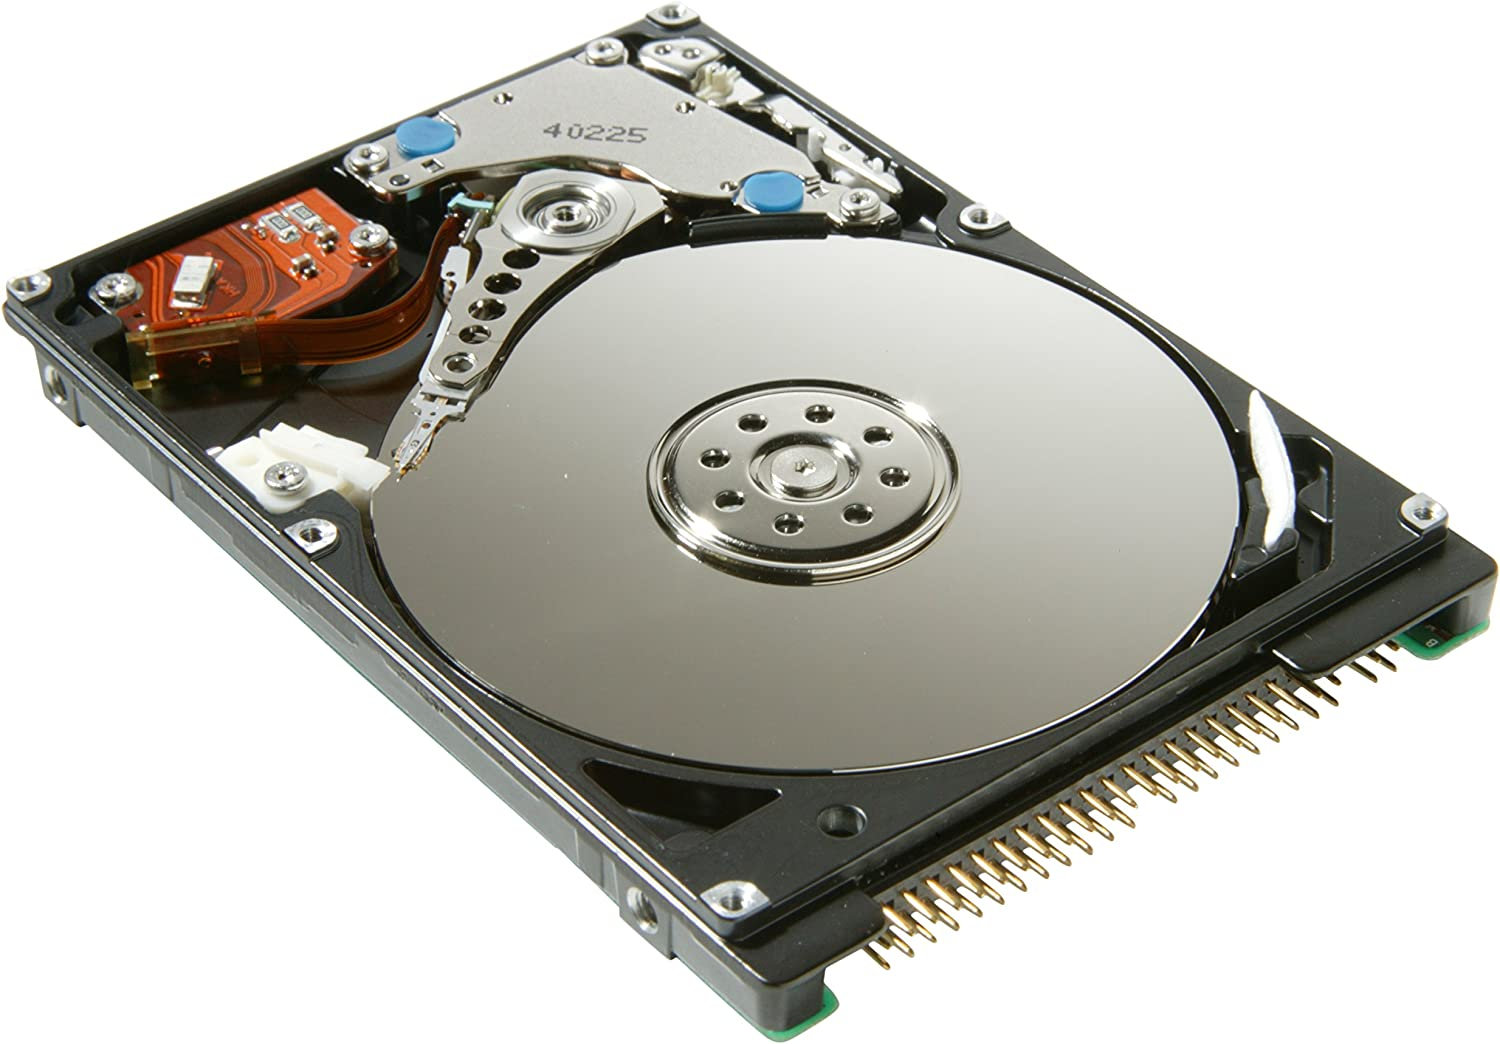 Hitachi 40GB 2.5